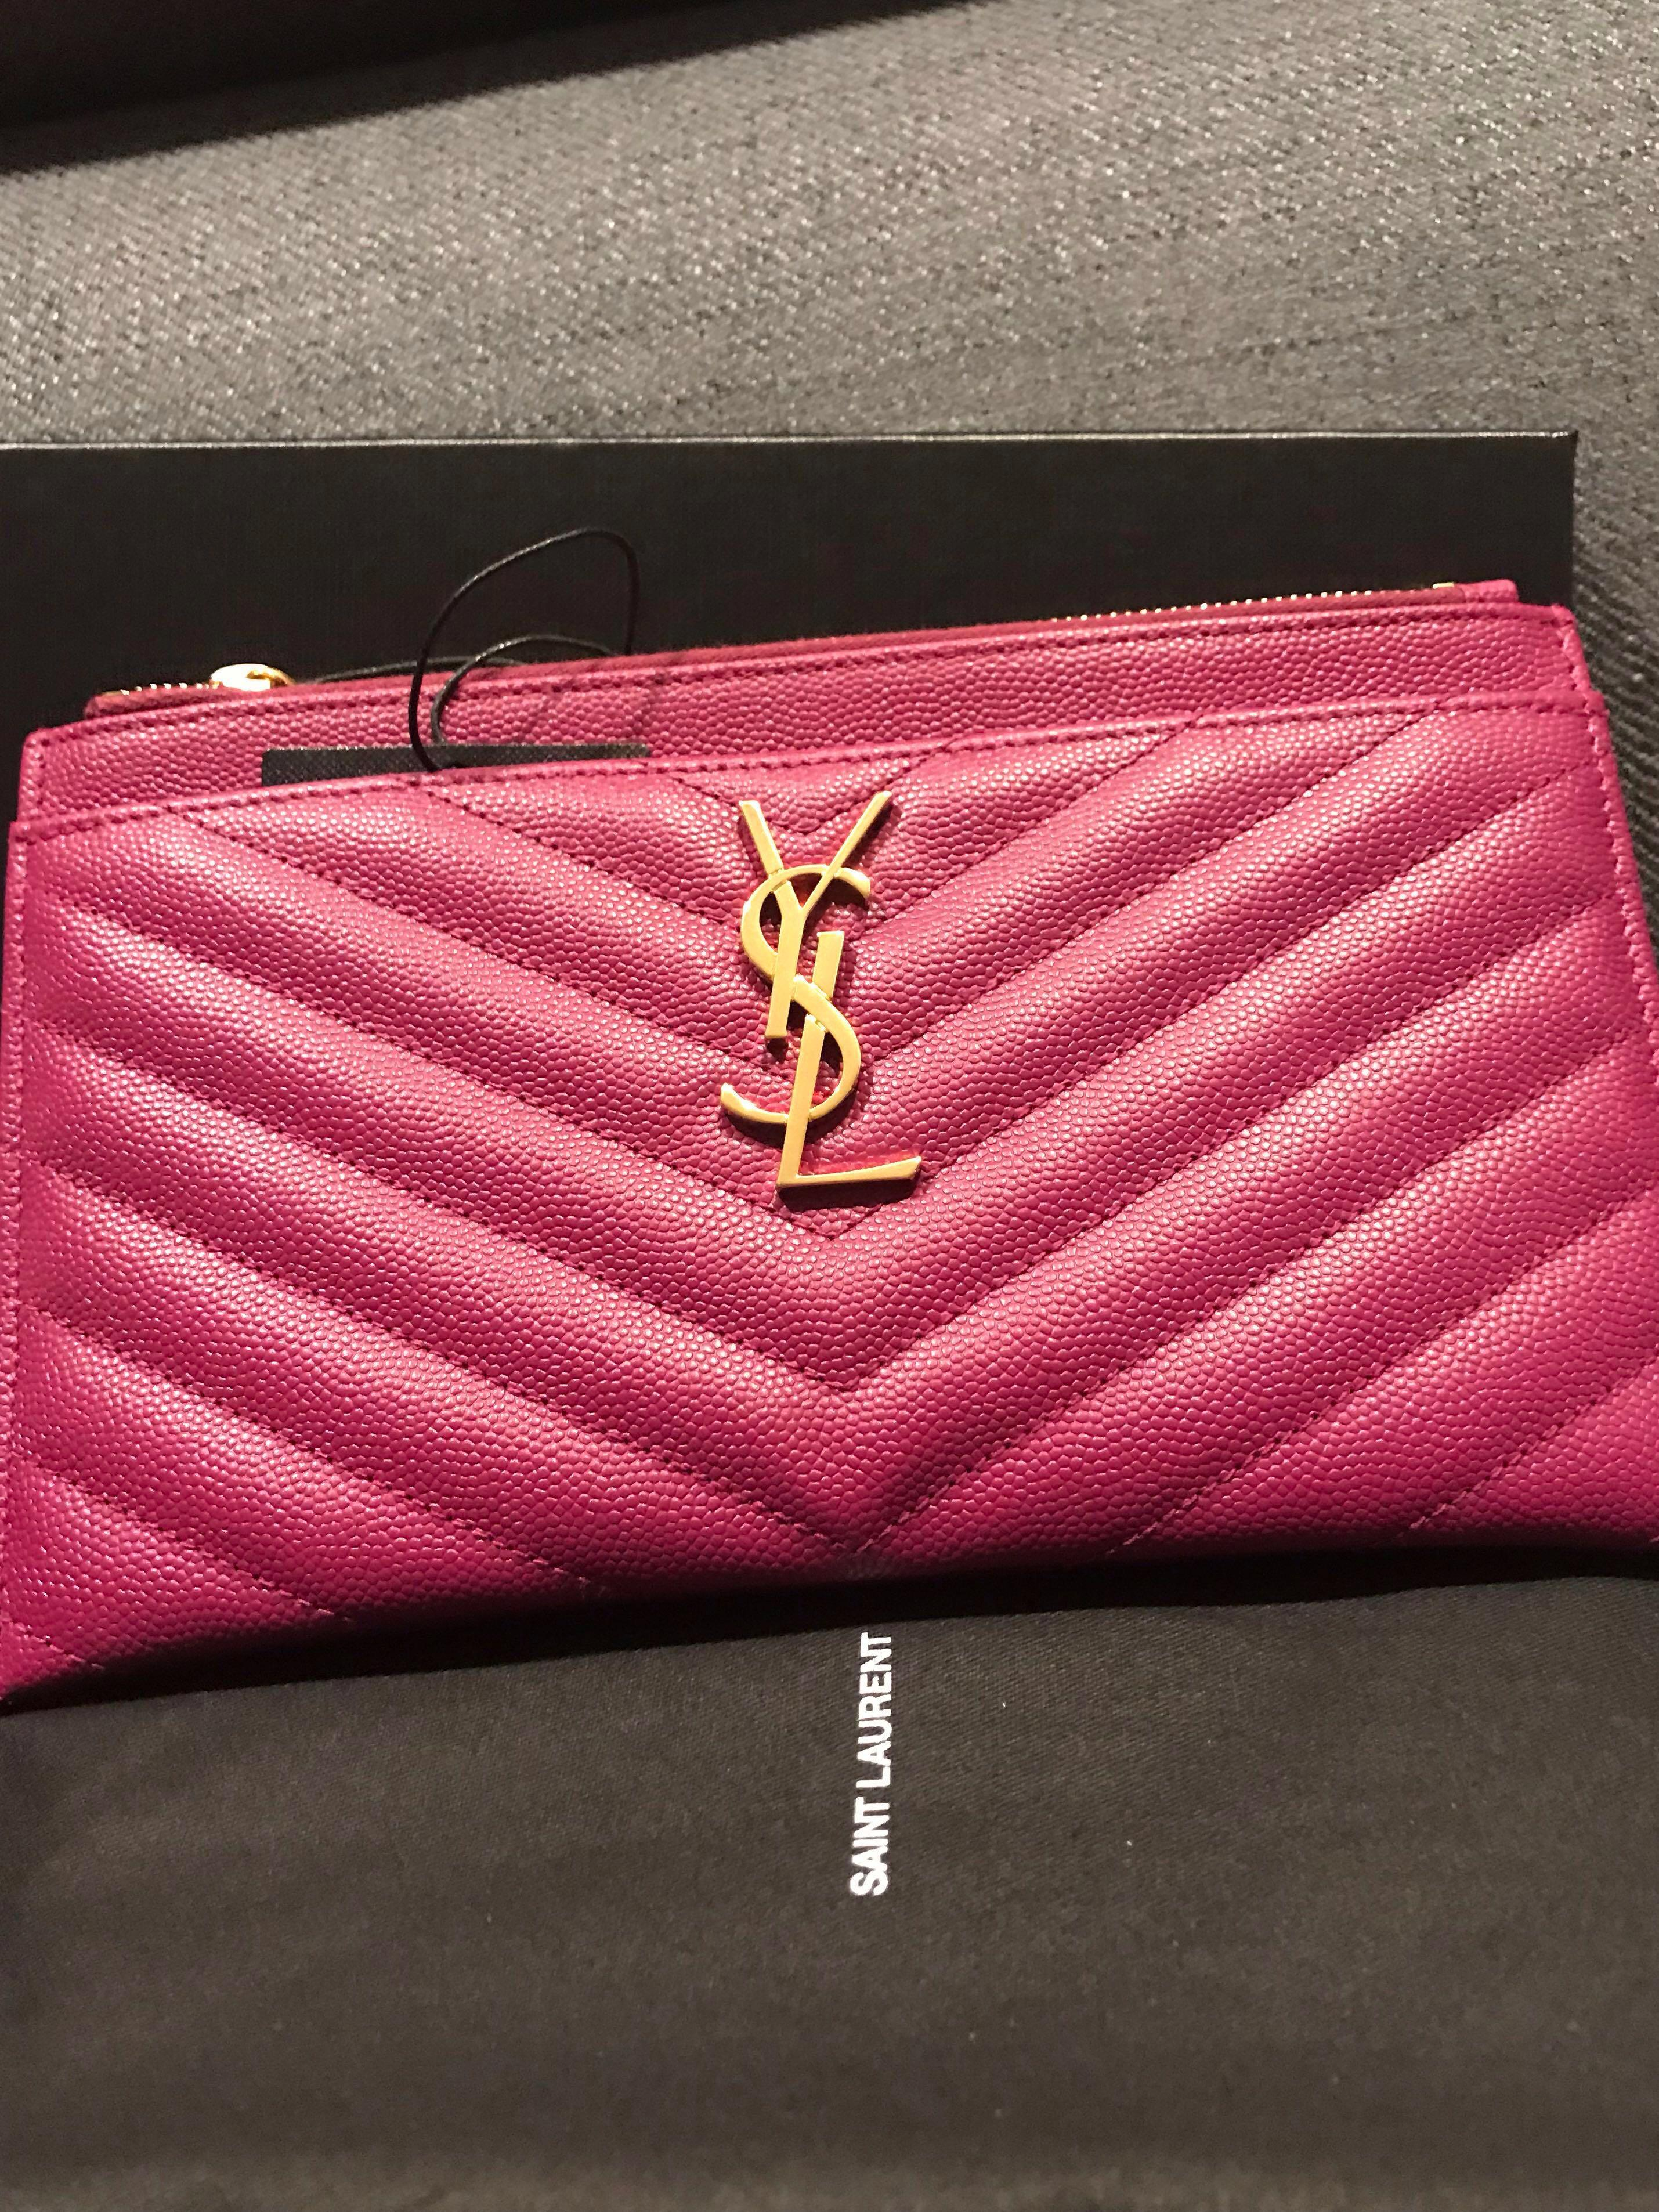 ff5b68528e YSL Monogram Bill Pouch, Luxury, Bags & Wallets, Clutches on Carousell